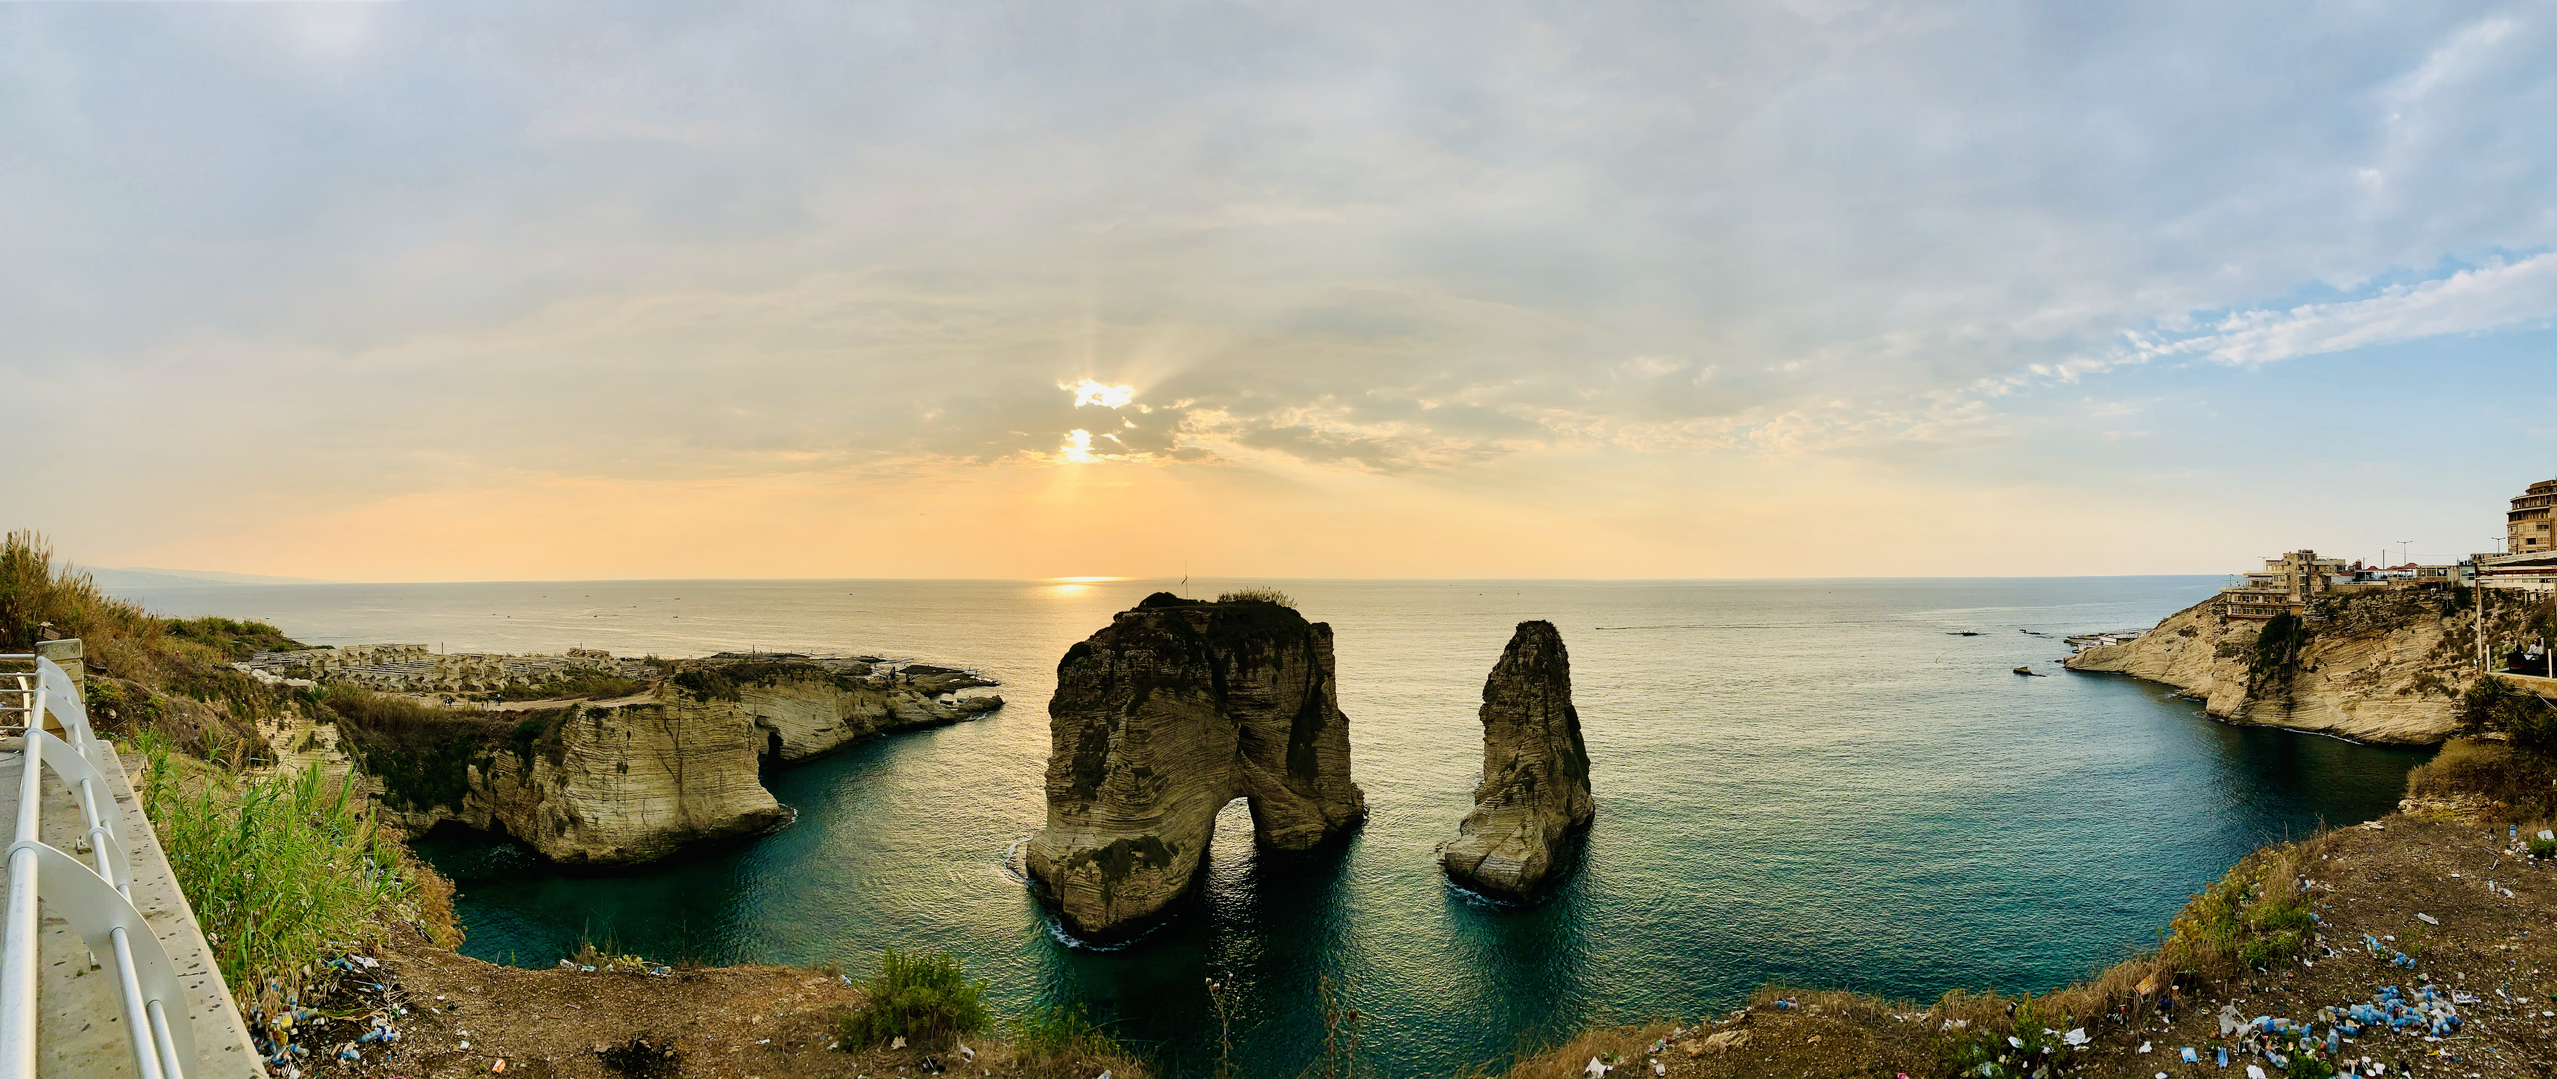 Pigeon's Rock, Panormaic View